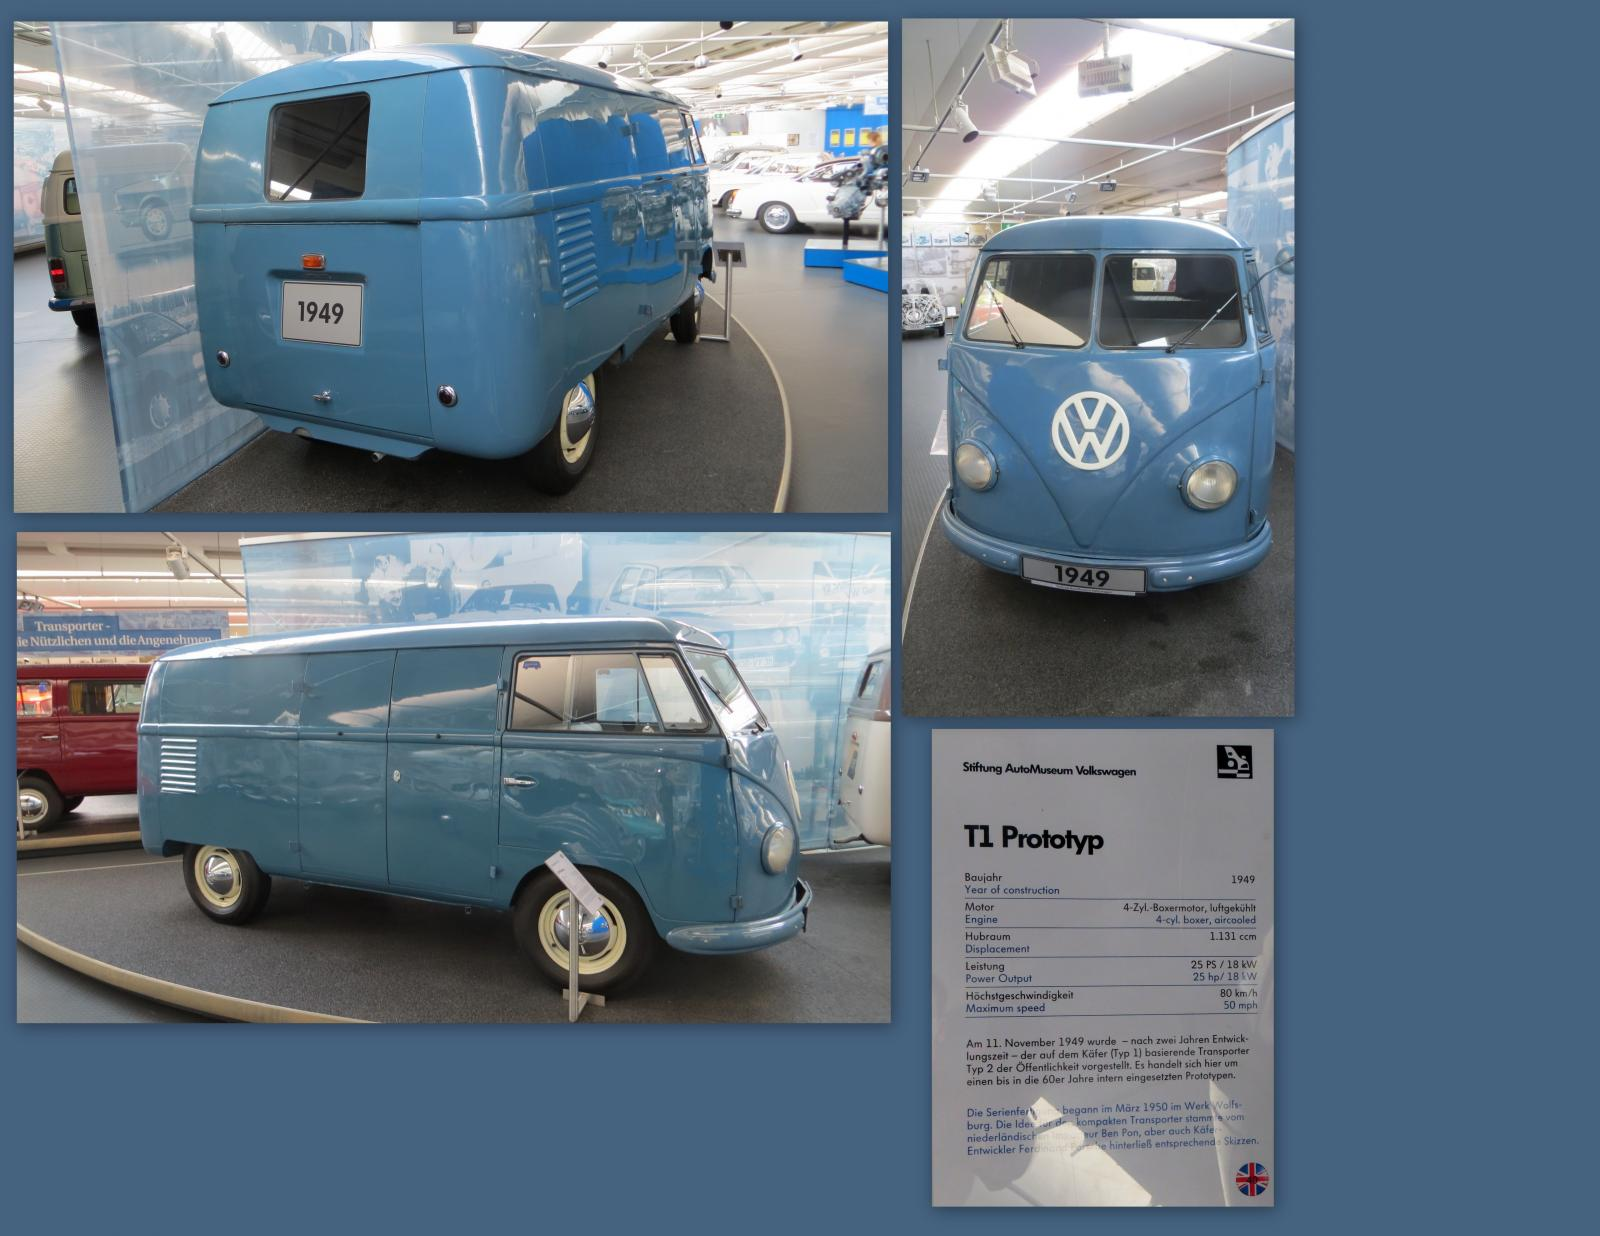 1949 T1 Prototype at the Stiftung AutoMuseum Volkswagen in Wolfsburg, Germany